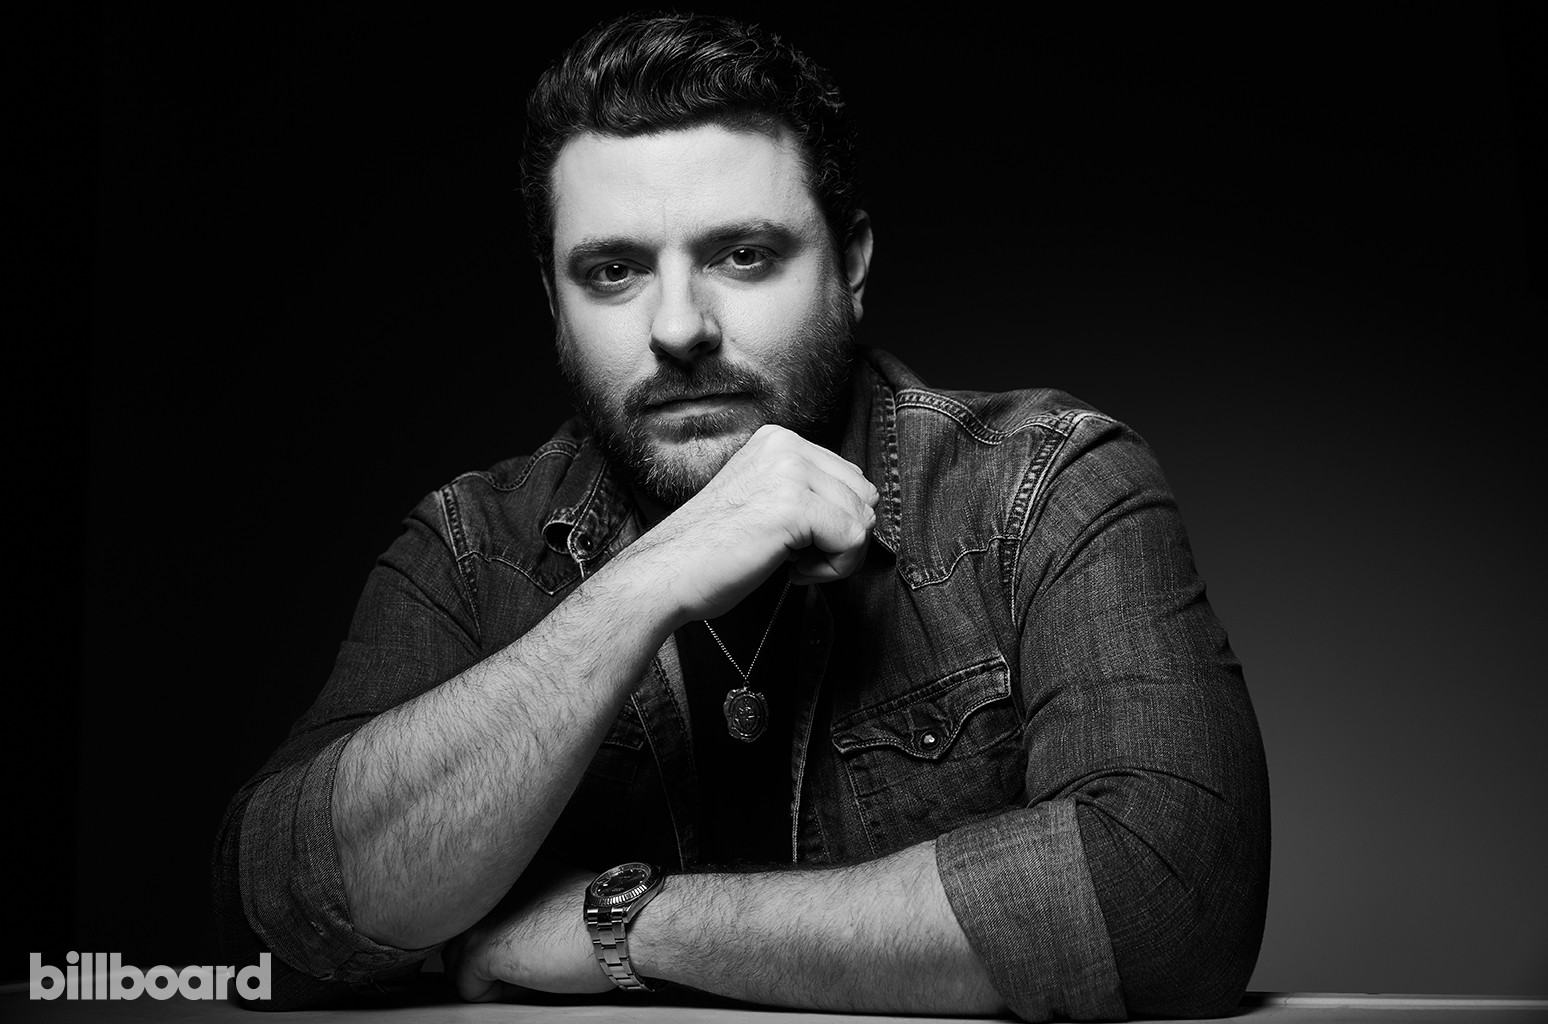 Chris Young photographed on June 10, 2017 at Nissan Stadium in Nashville, Tenn.